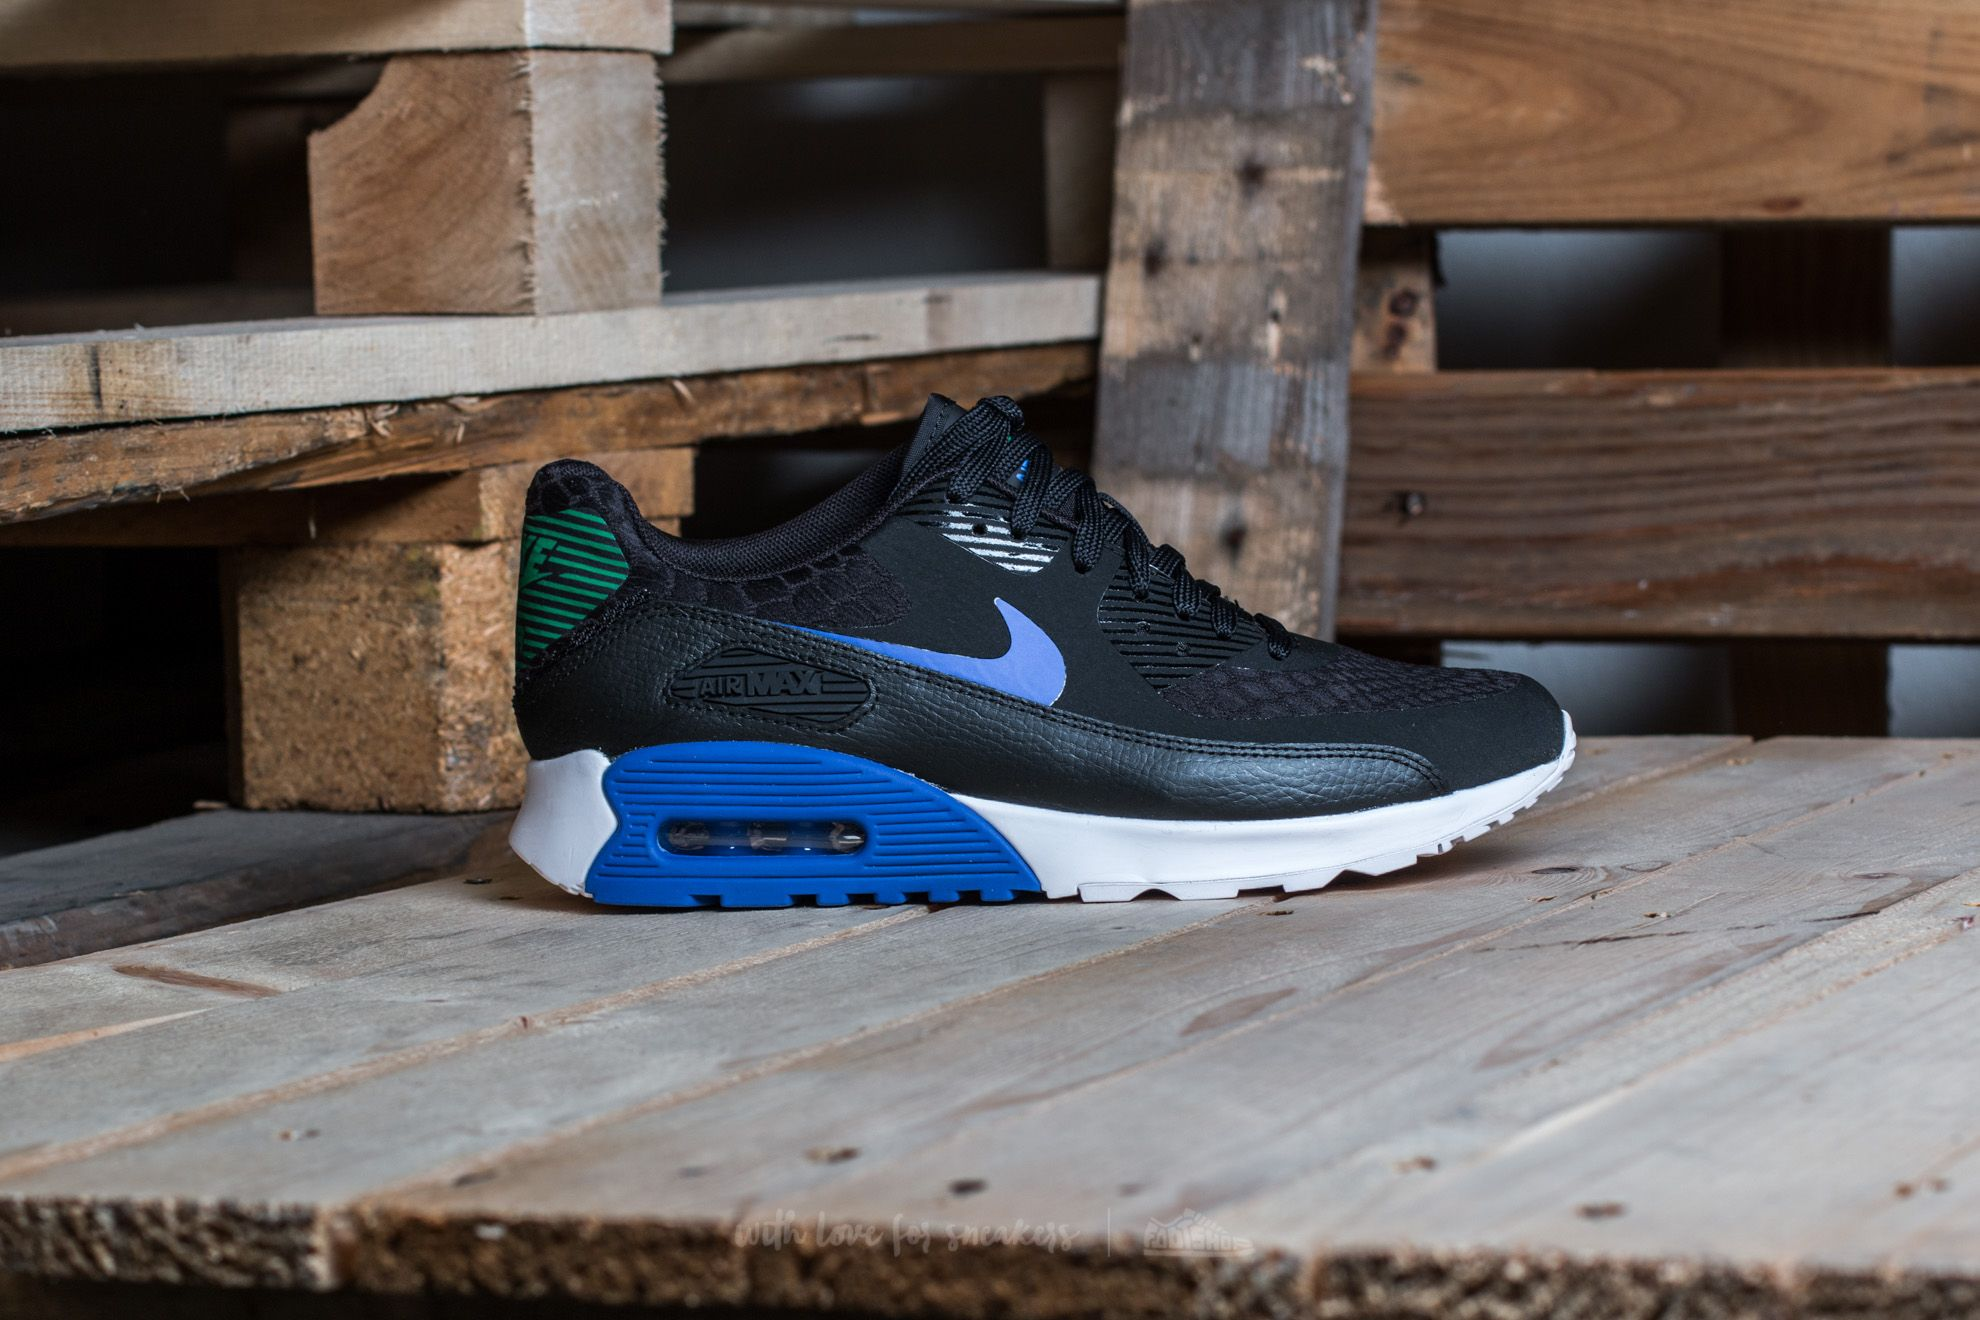 Nike W Air Max 90 Ultra 2.0 Black Paramount Blue white for